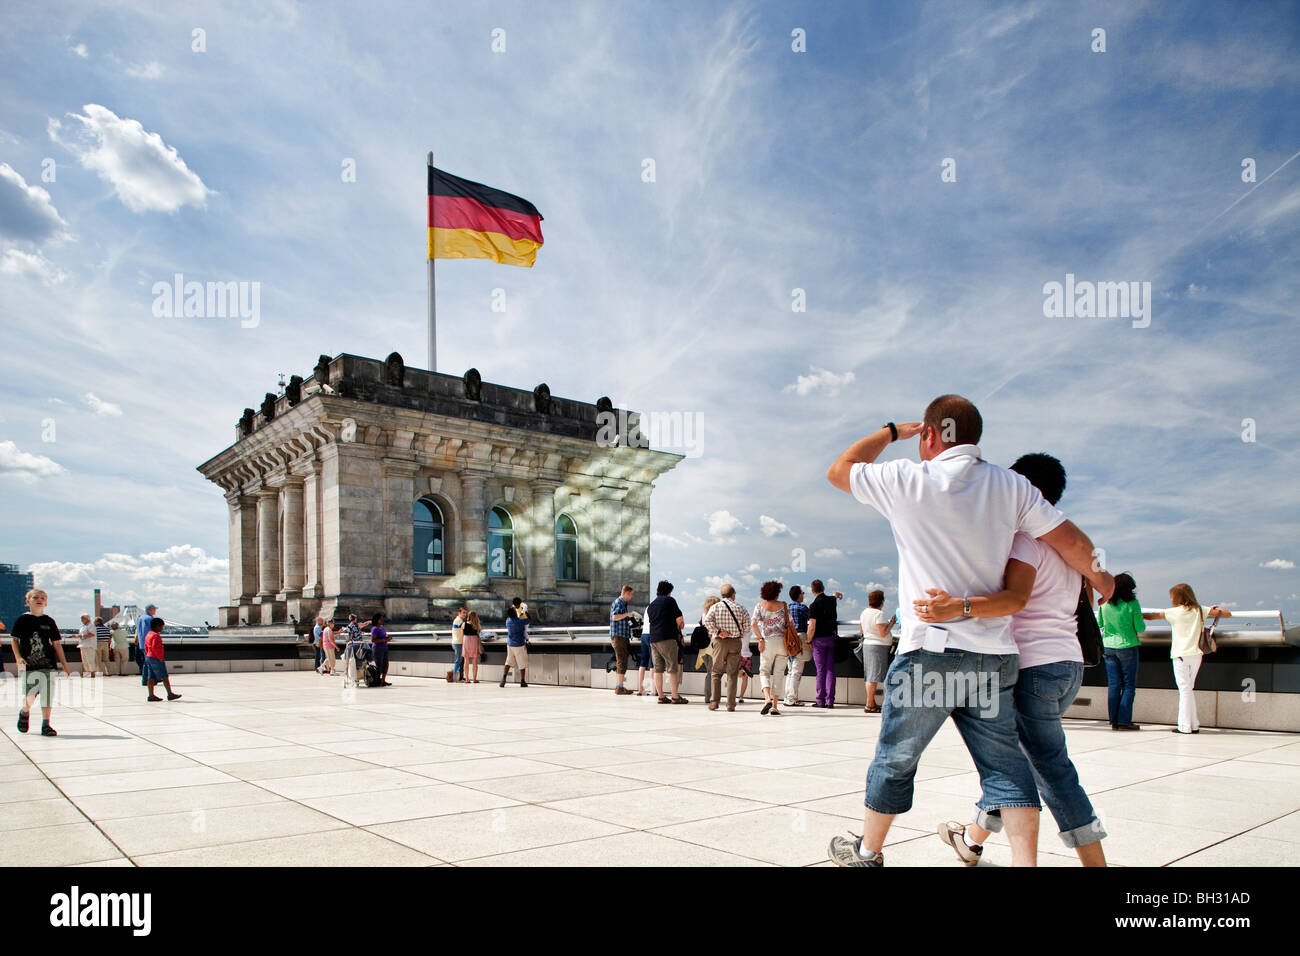 Visitors on the roof terrace of the Reichstag, Berlin, Germany - Stock Image